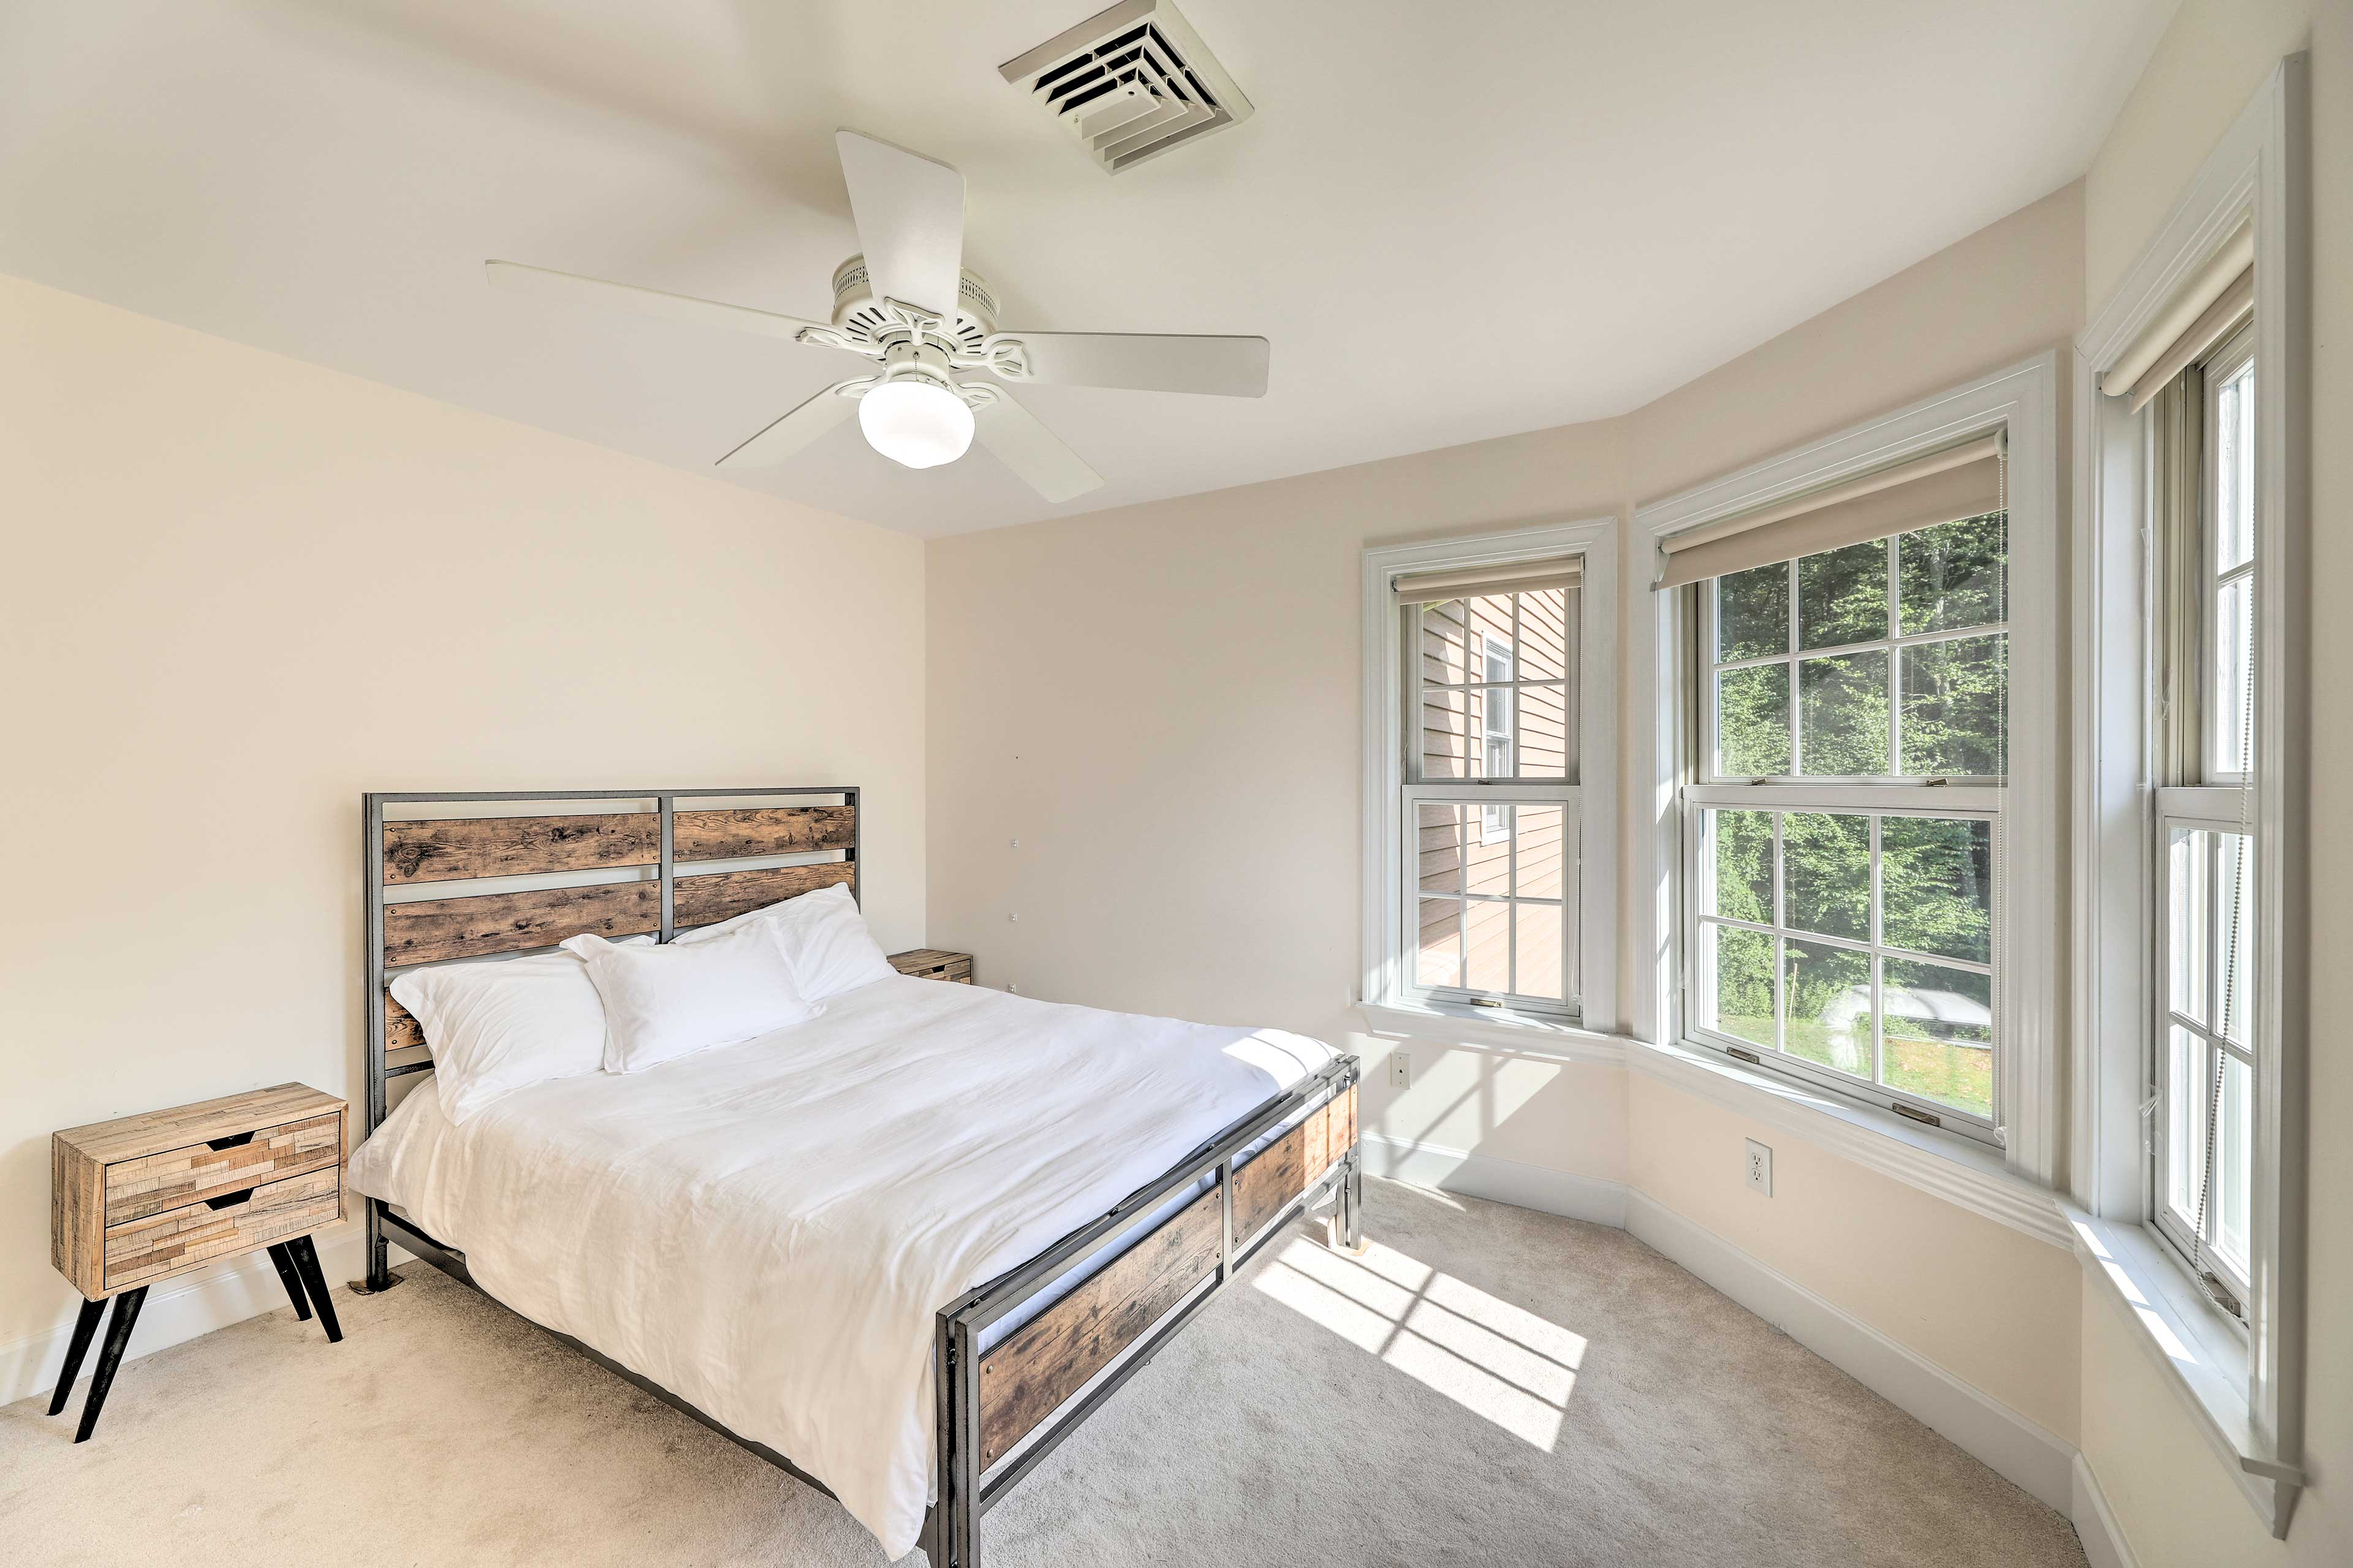 Keep cool at night thanks to ceiling fans & central A/C.